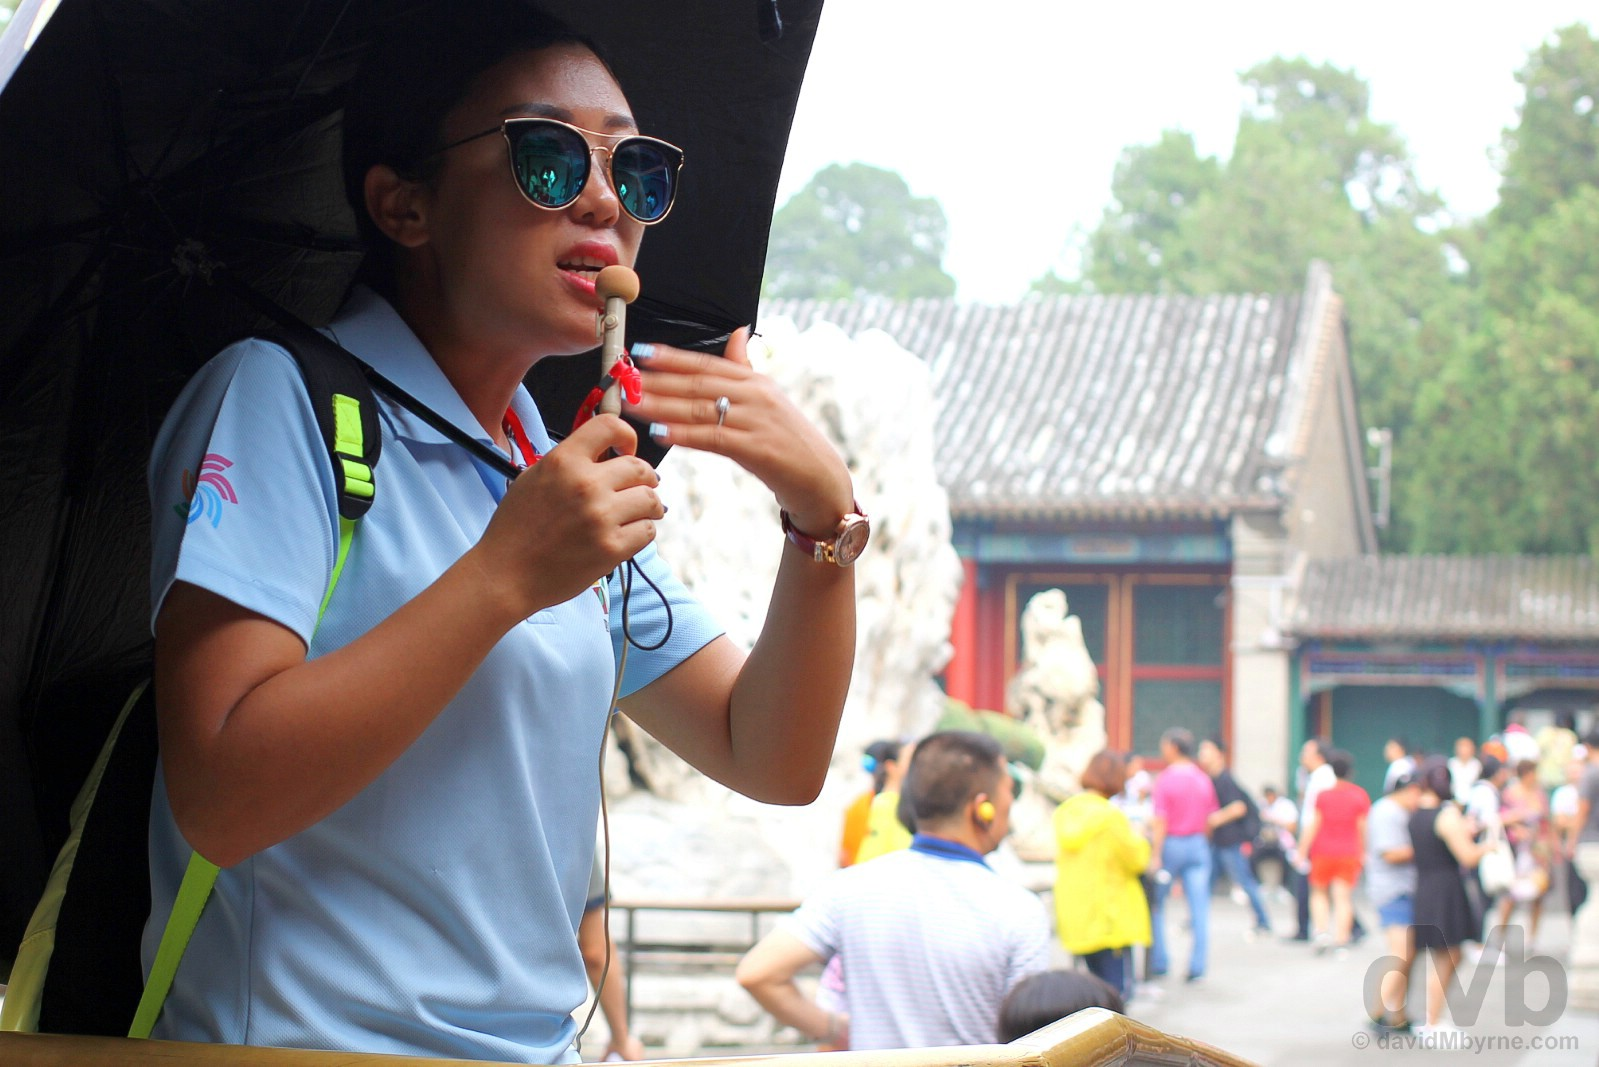 A tour guide in the grounds of the Summer Palace, Beijing, China. August 11, 2017.